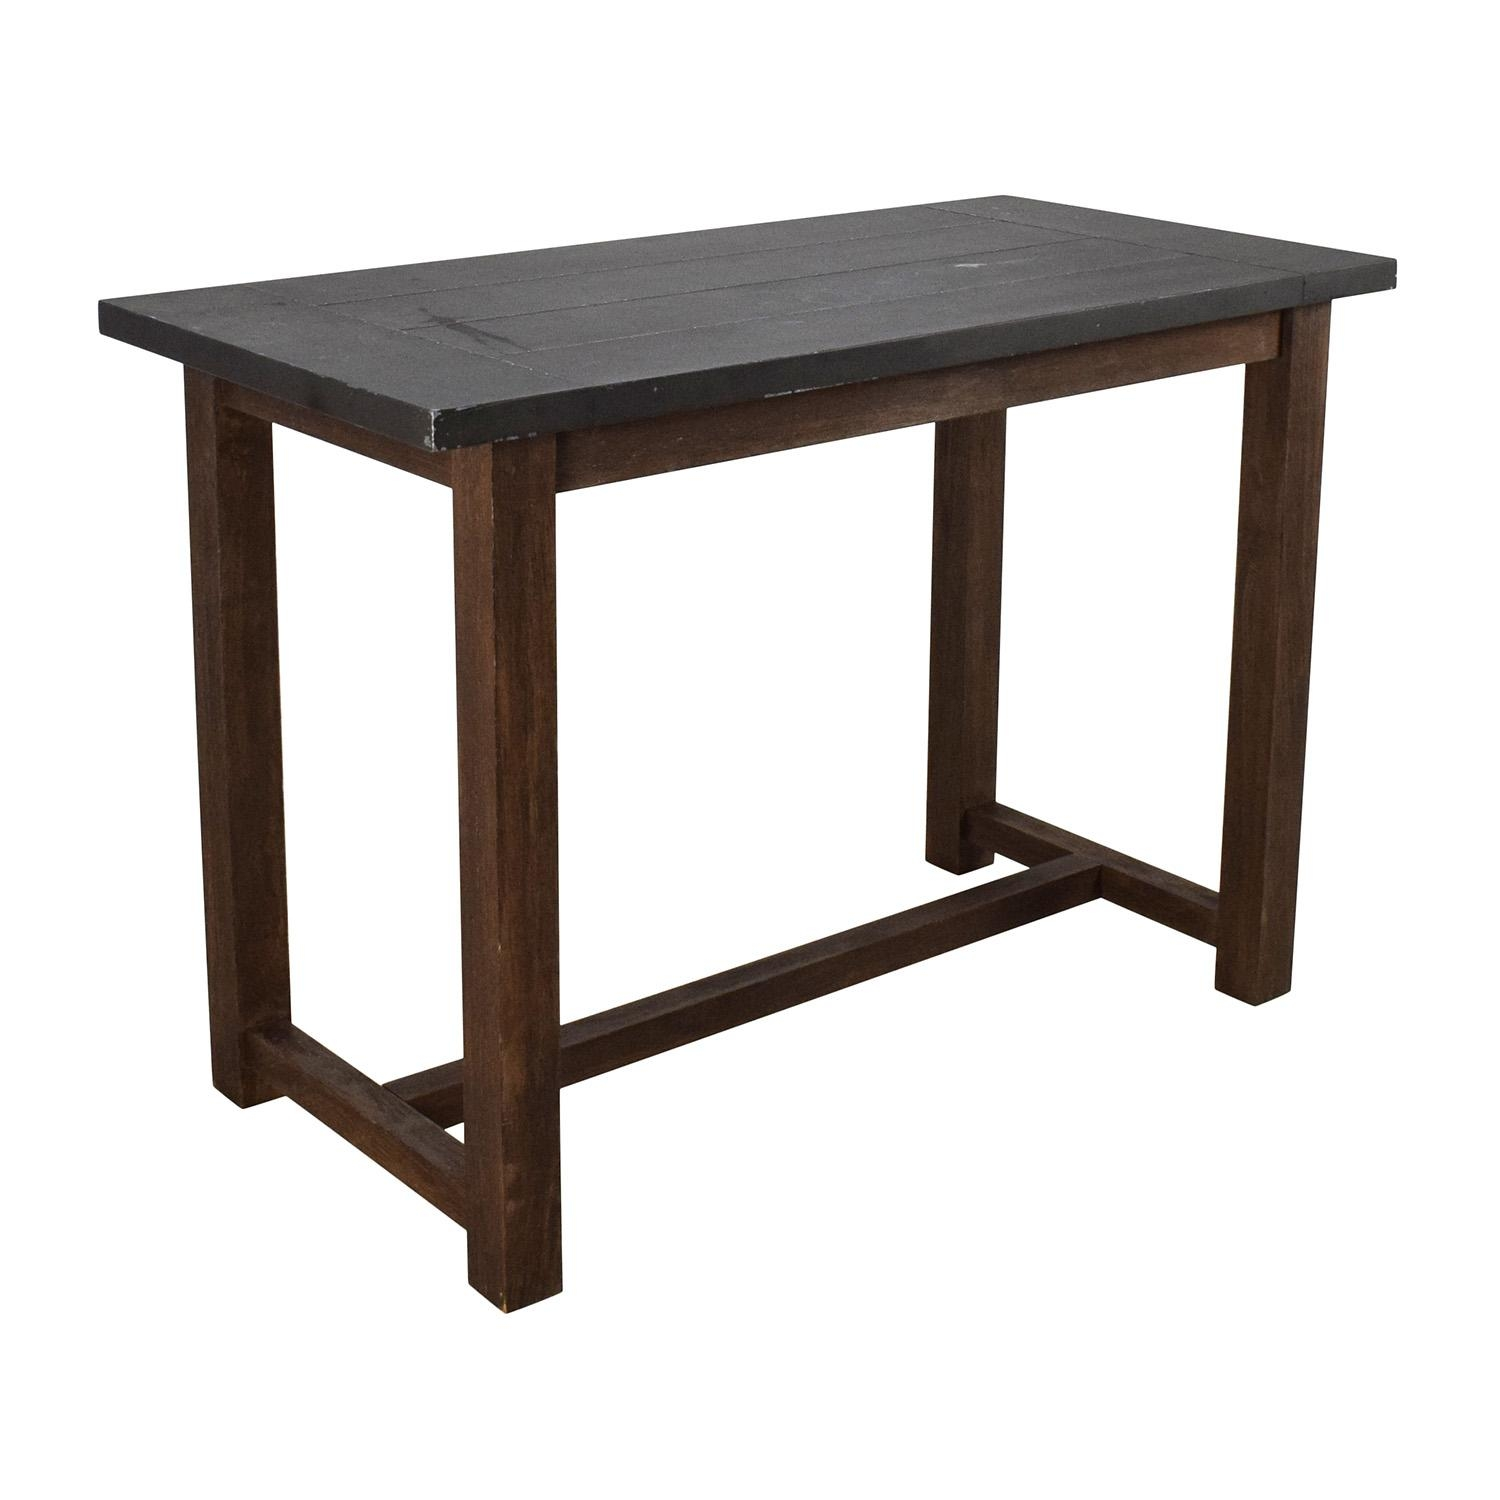 69% Off - Crate And Barrel Crate & Barrel Galvin High Table / Tables throughout Crate And Barrel Sofa Tables